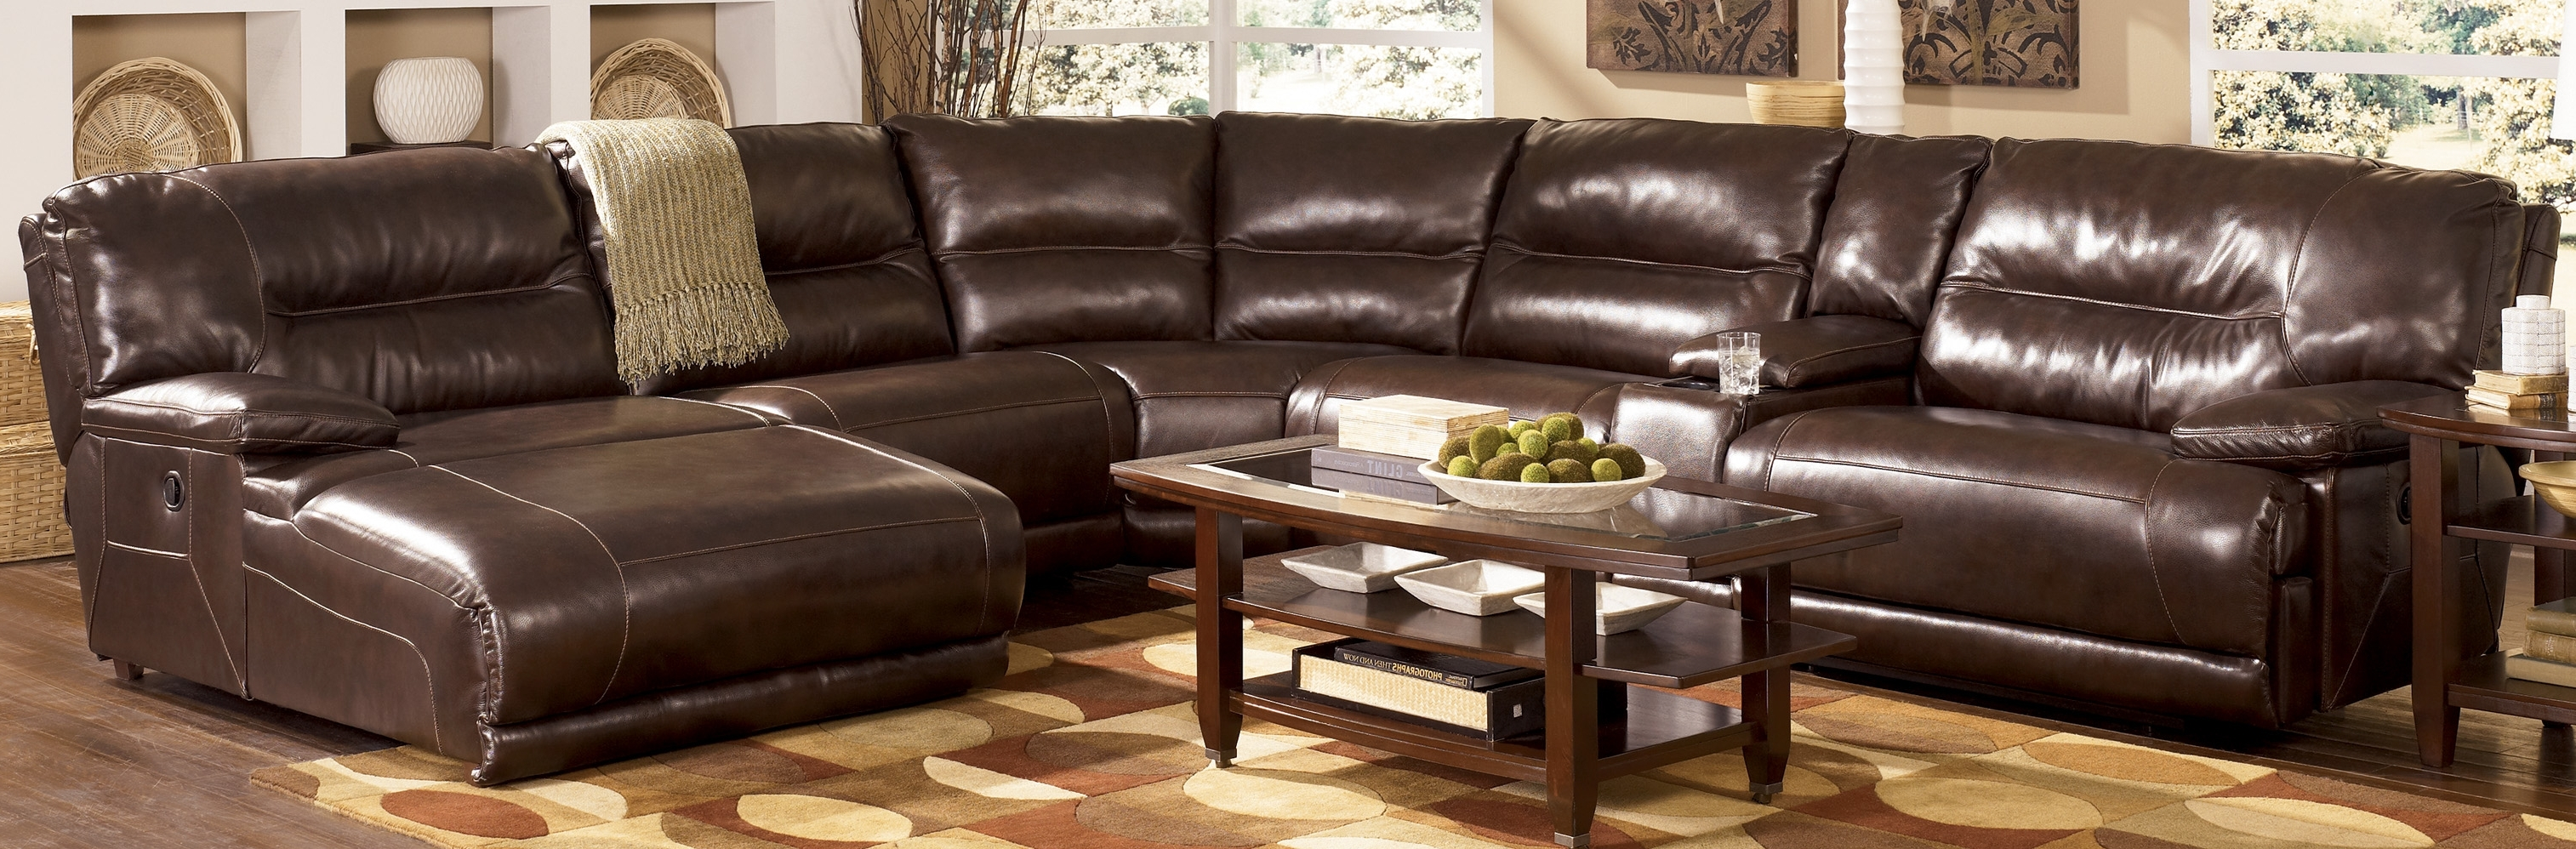 Awesome Ashley Red Leather Sectional Contemporary – Liltigertoo Intended For Most Recent Red Faux Leather Sectionals (View 15 of 20)